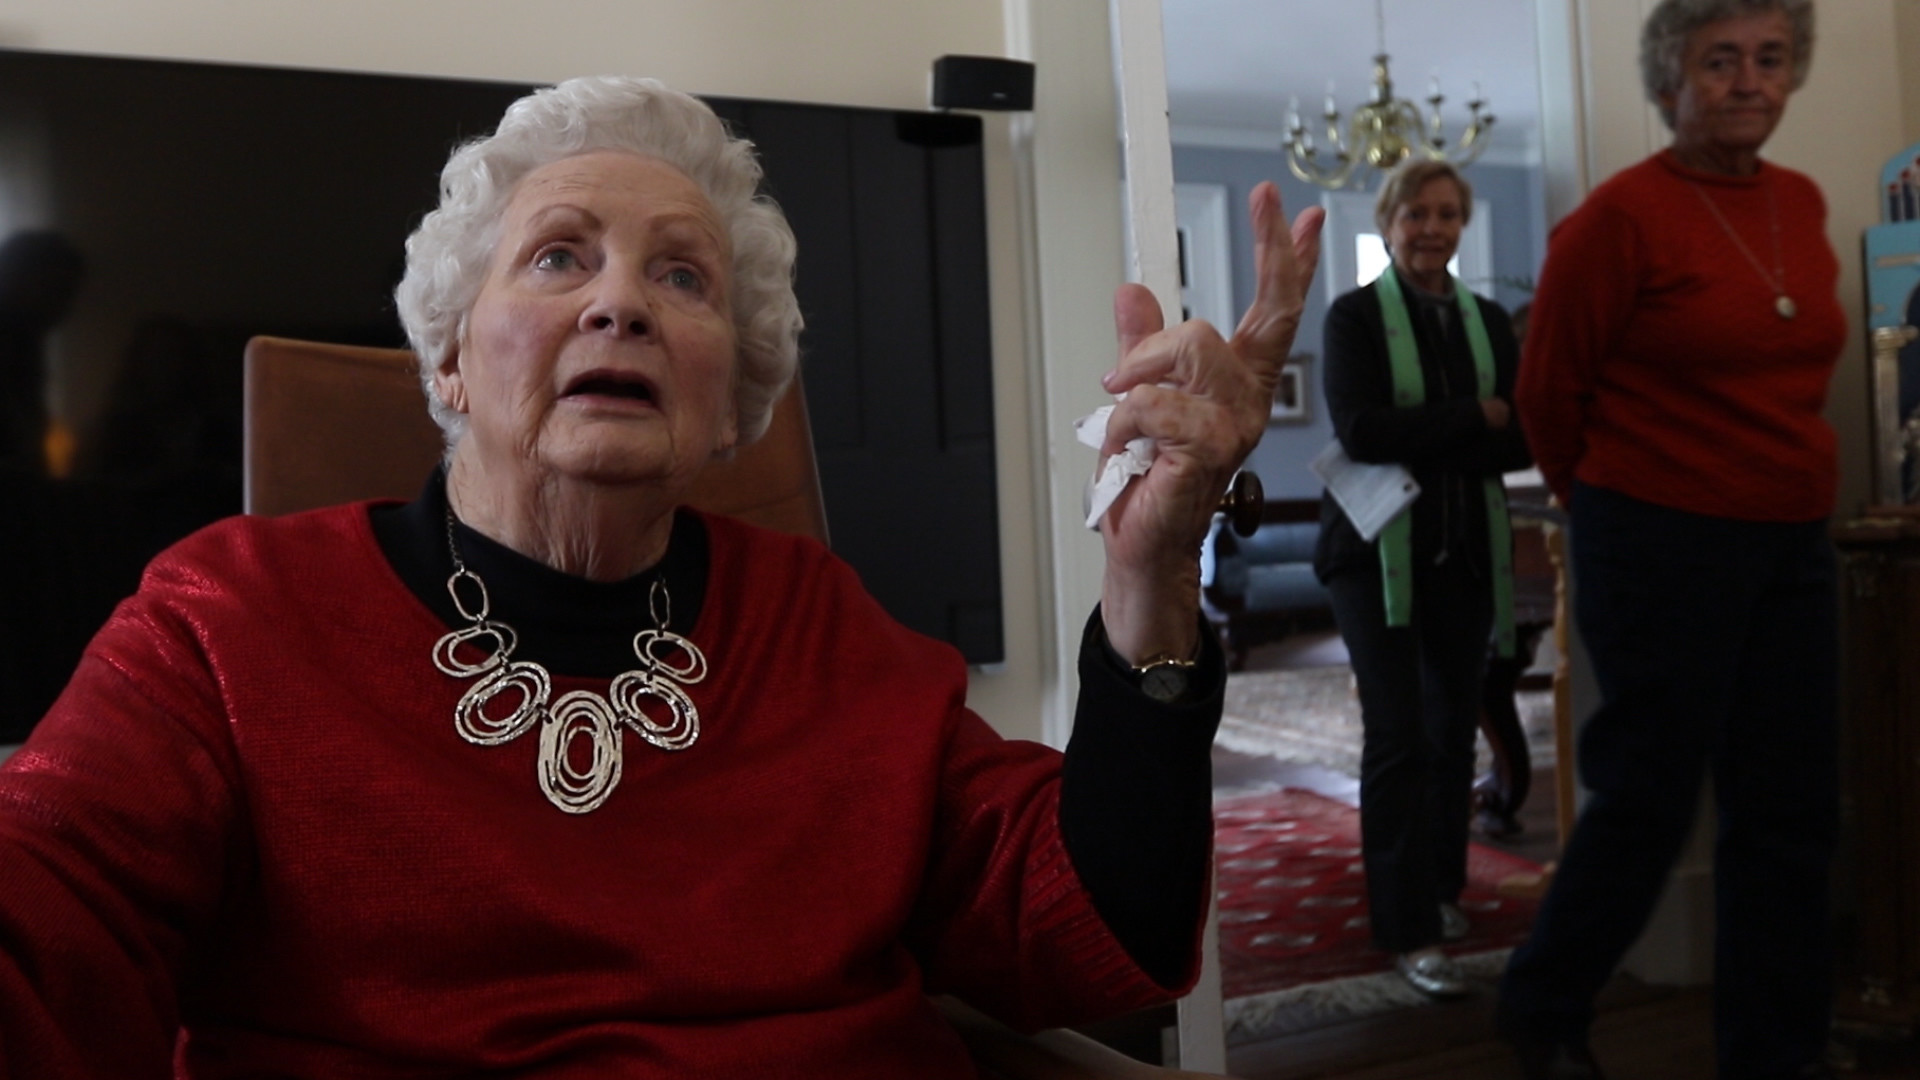 Toots Harper, former resident of The Ruins, described during Christmas at The Ruins seeing lights from Shaw Air Force Base announcing the end of World War II as she sat on the back porch of the home in Stateburg in 1945.